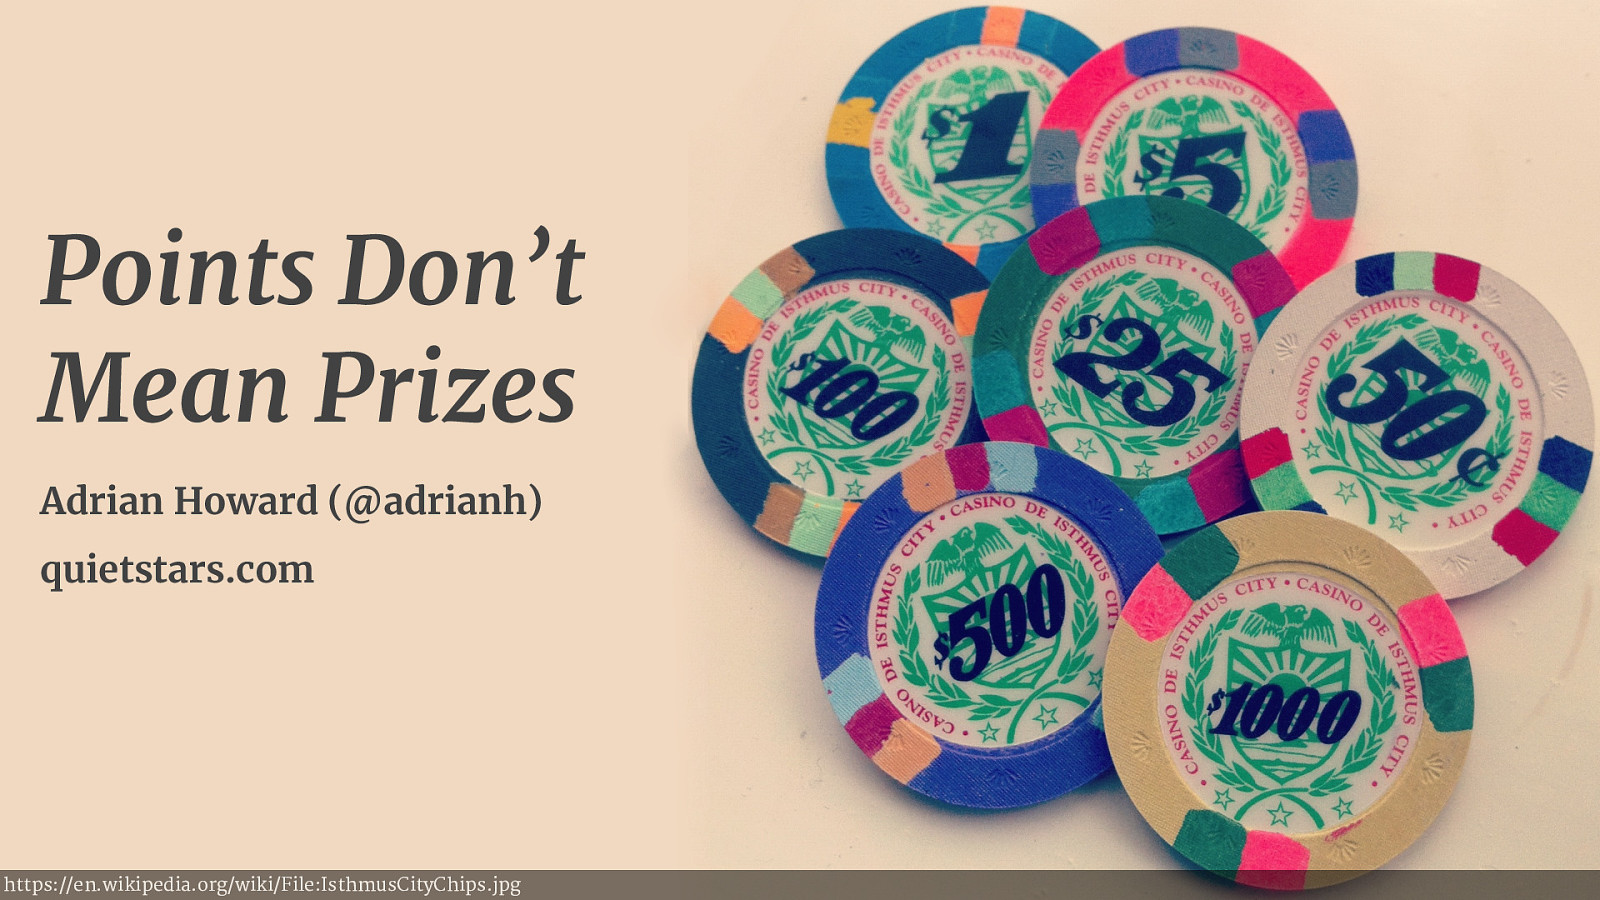 Points Don't Mean Prizes